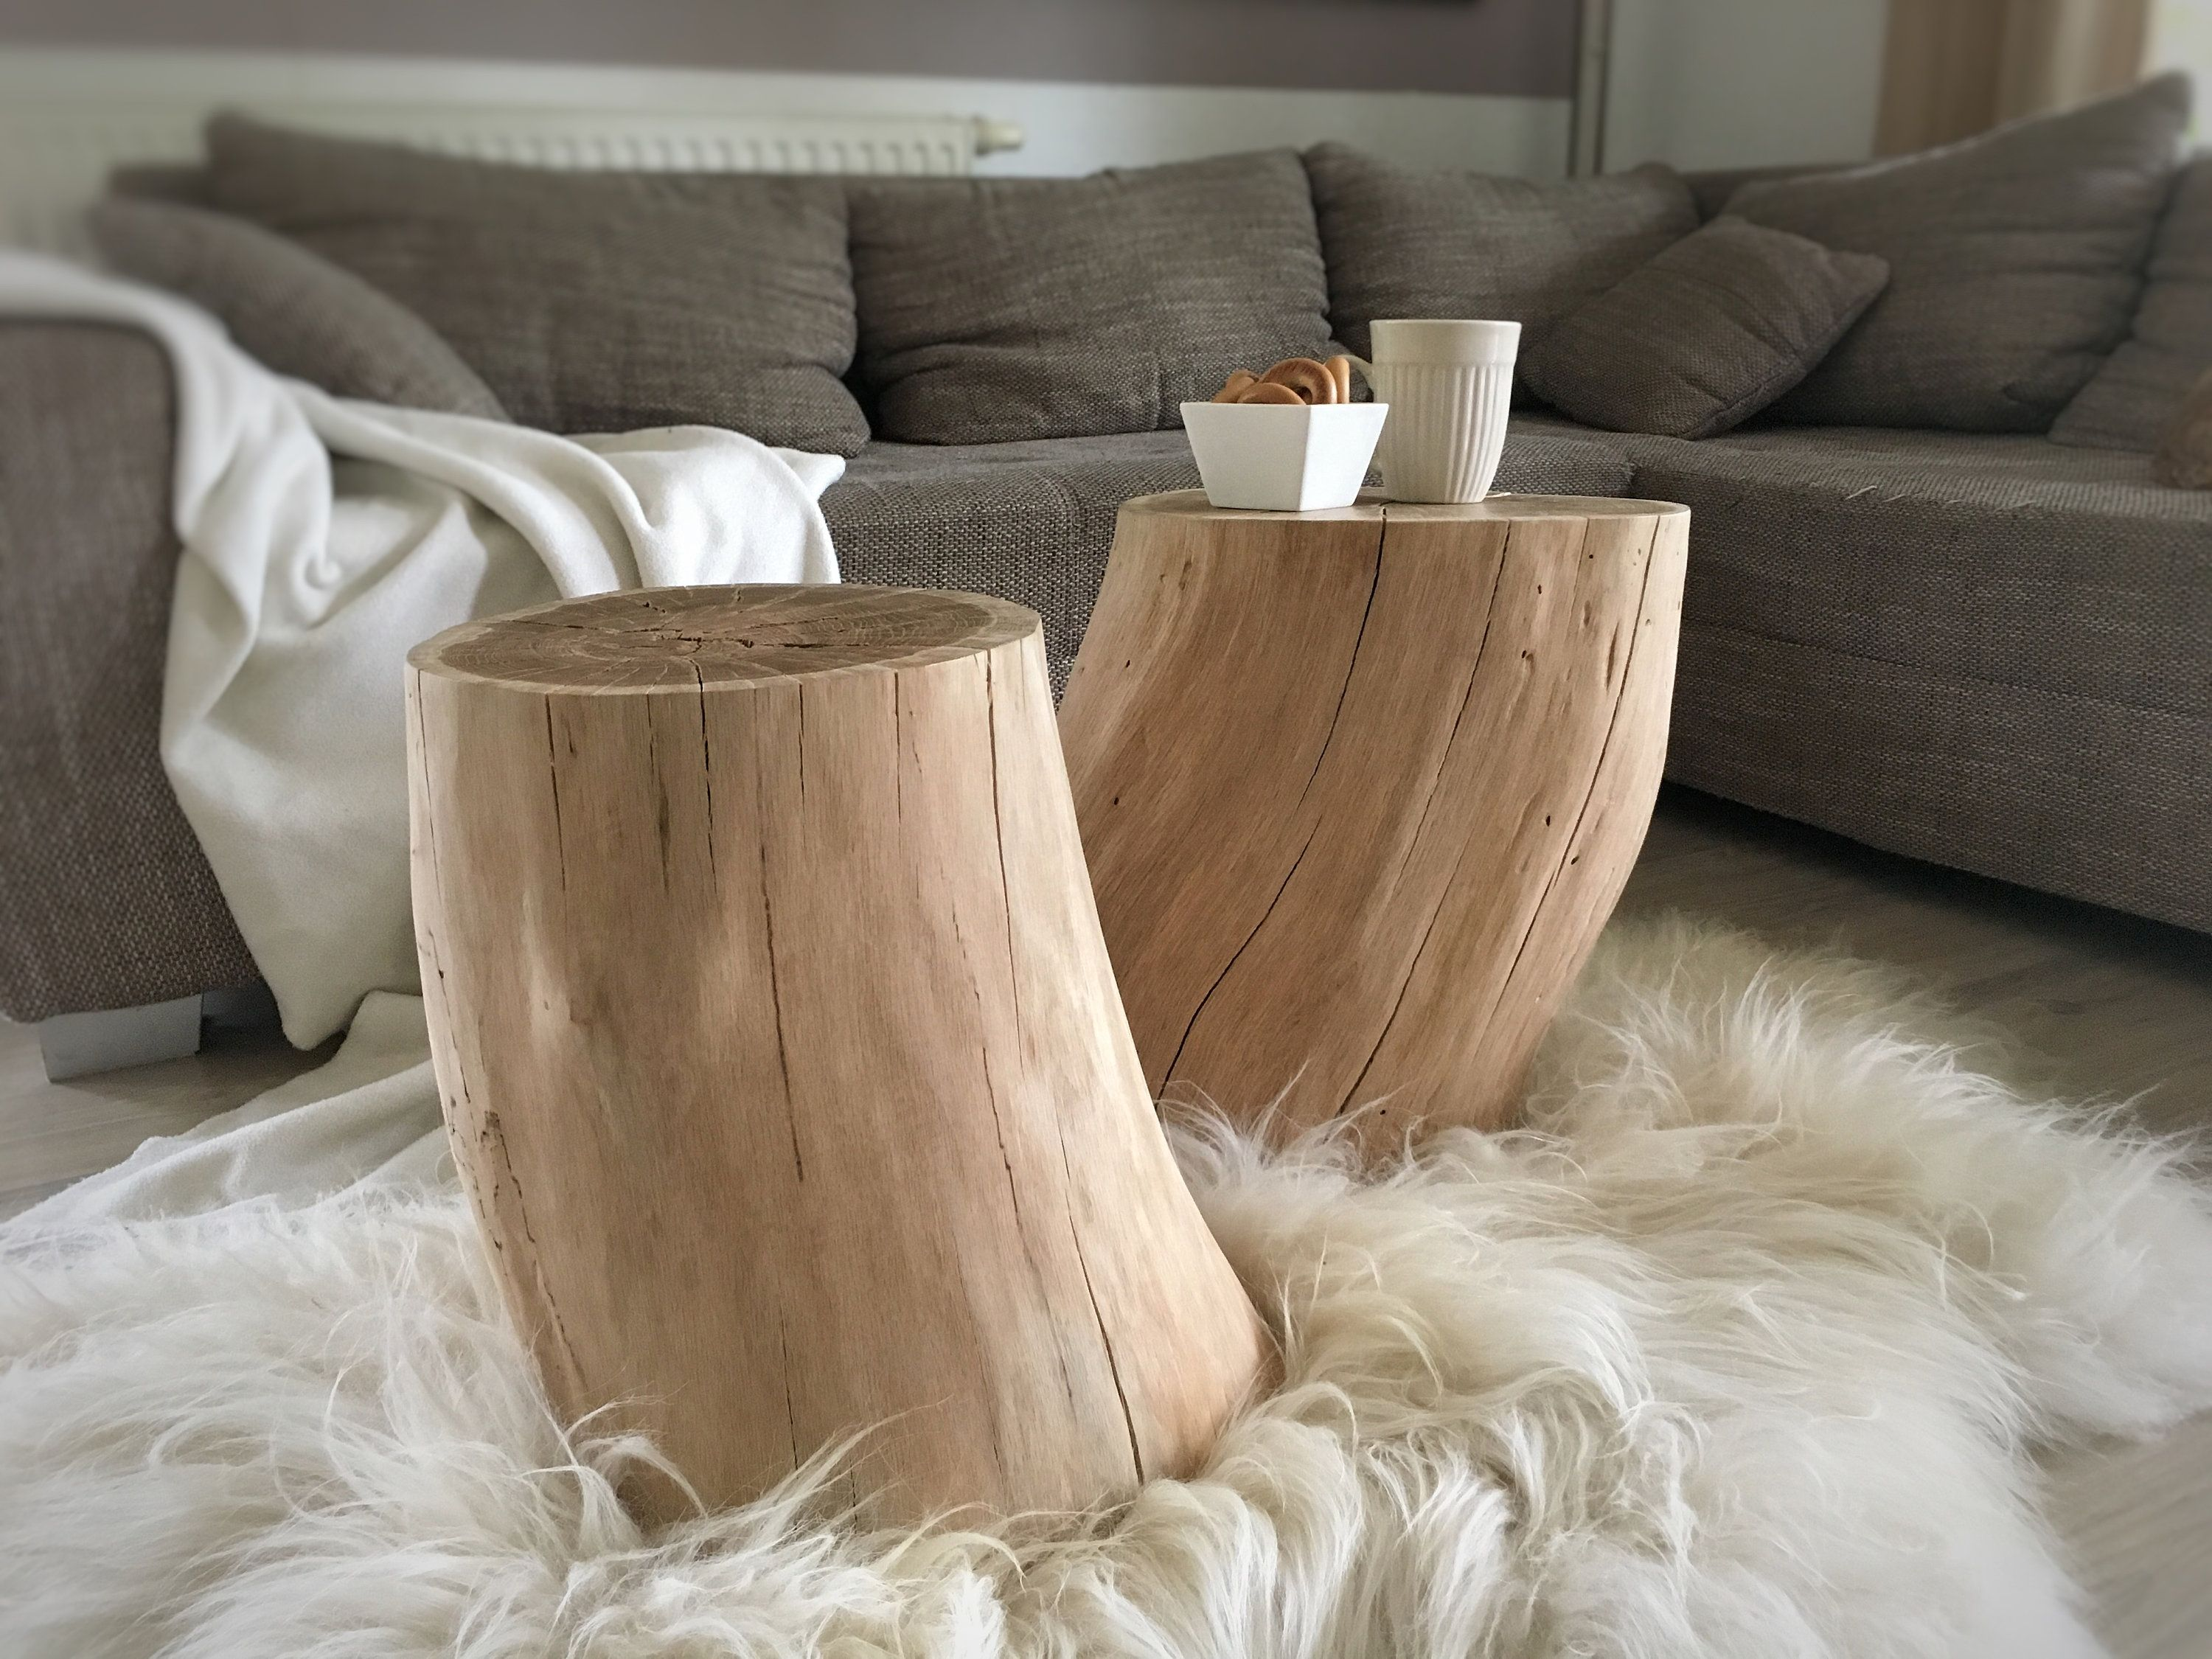 2 Set Side Table Bedside Table Tree Trunk Coffee Table